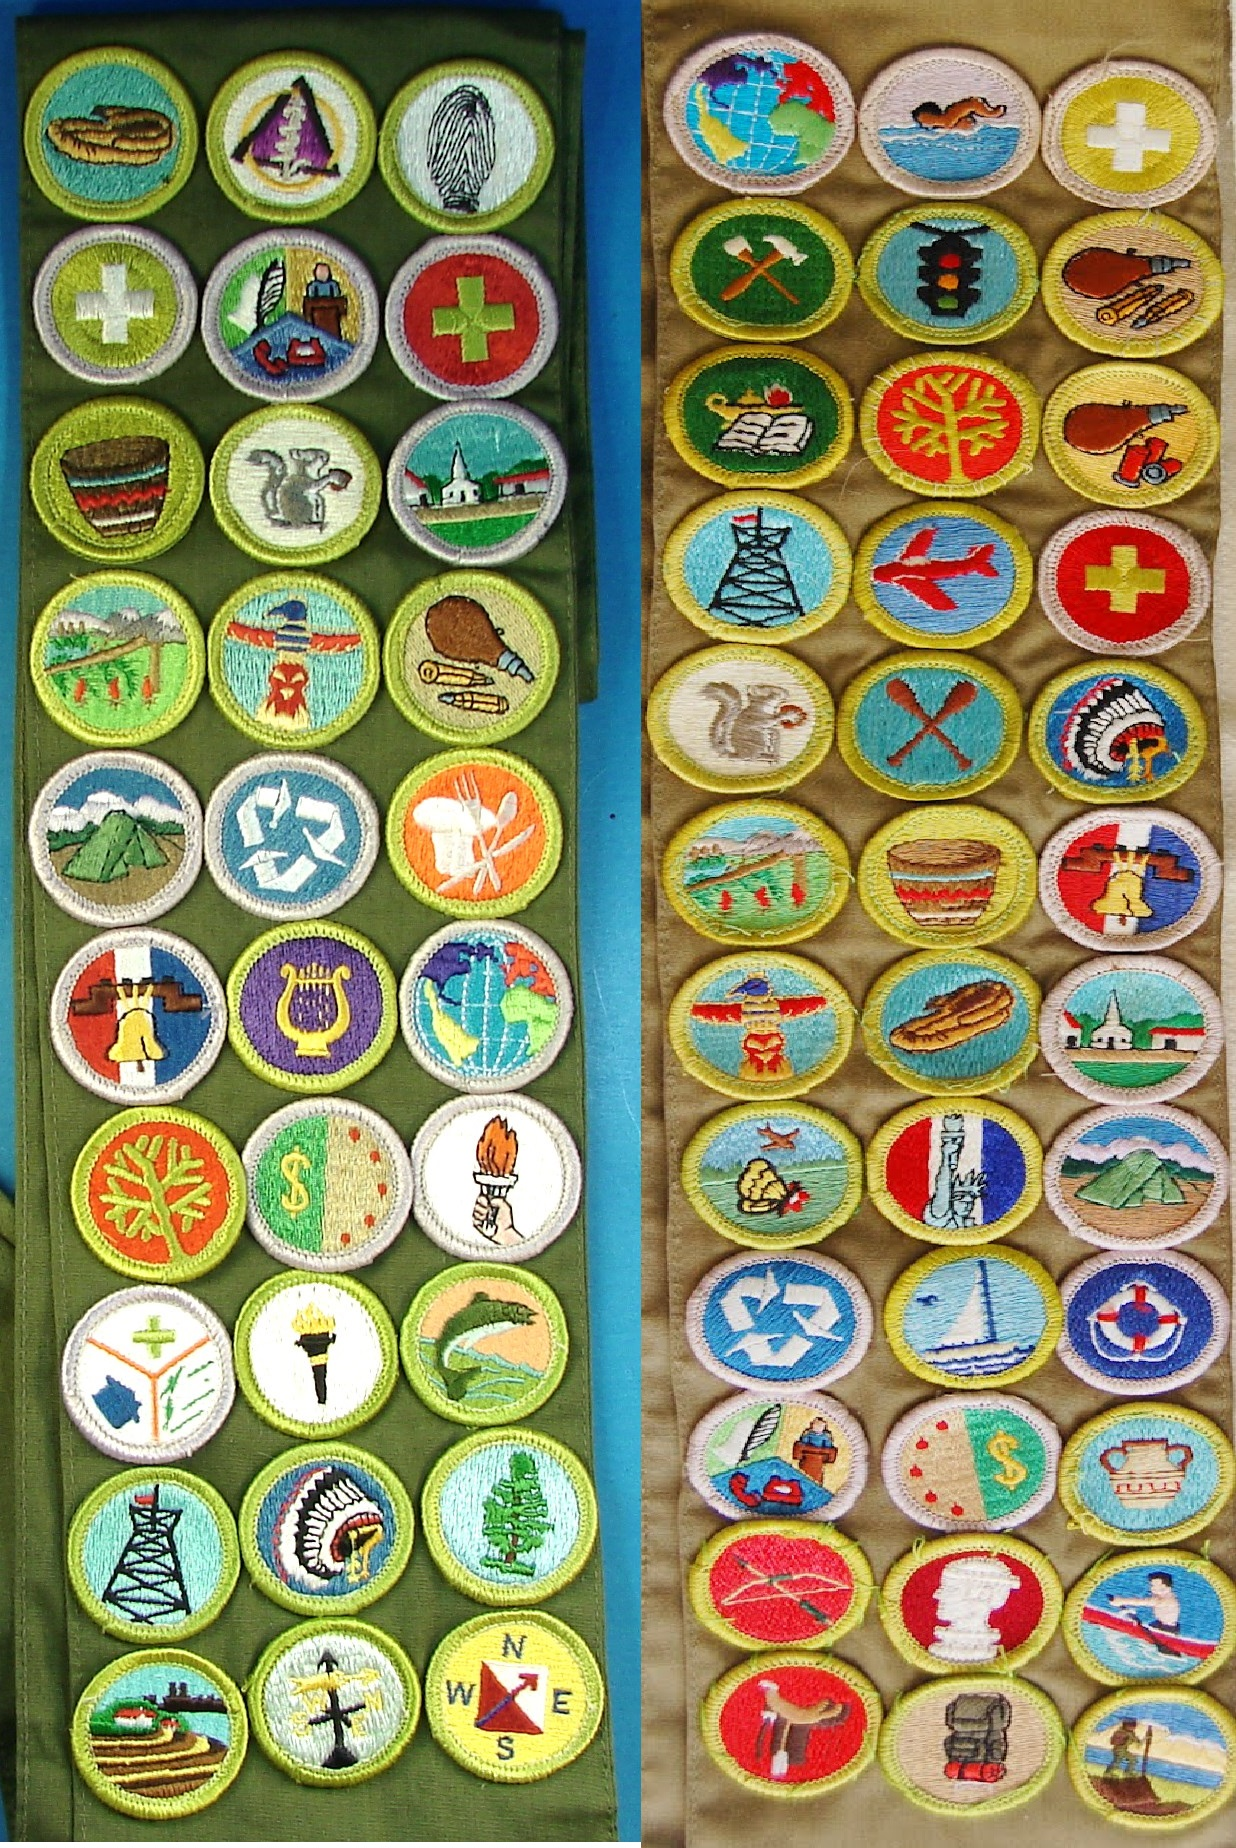 Merit Badge Sashes from Boy and Girl Scouts of America